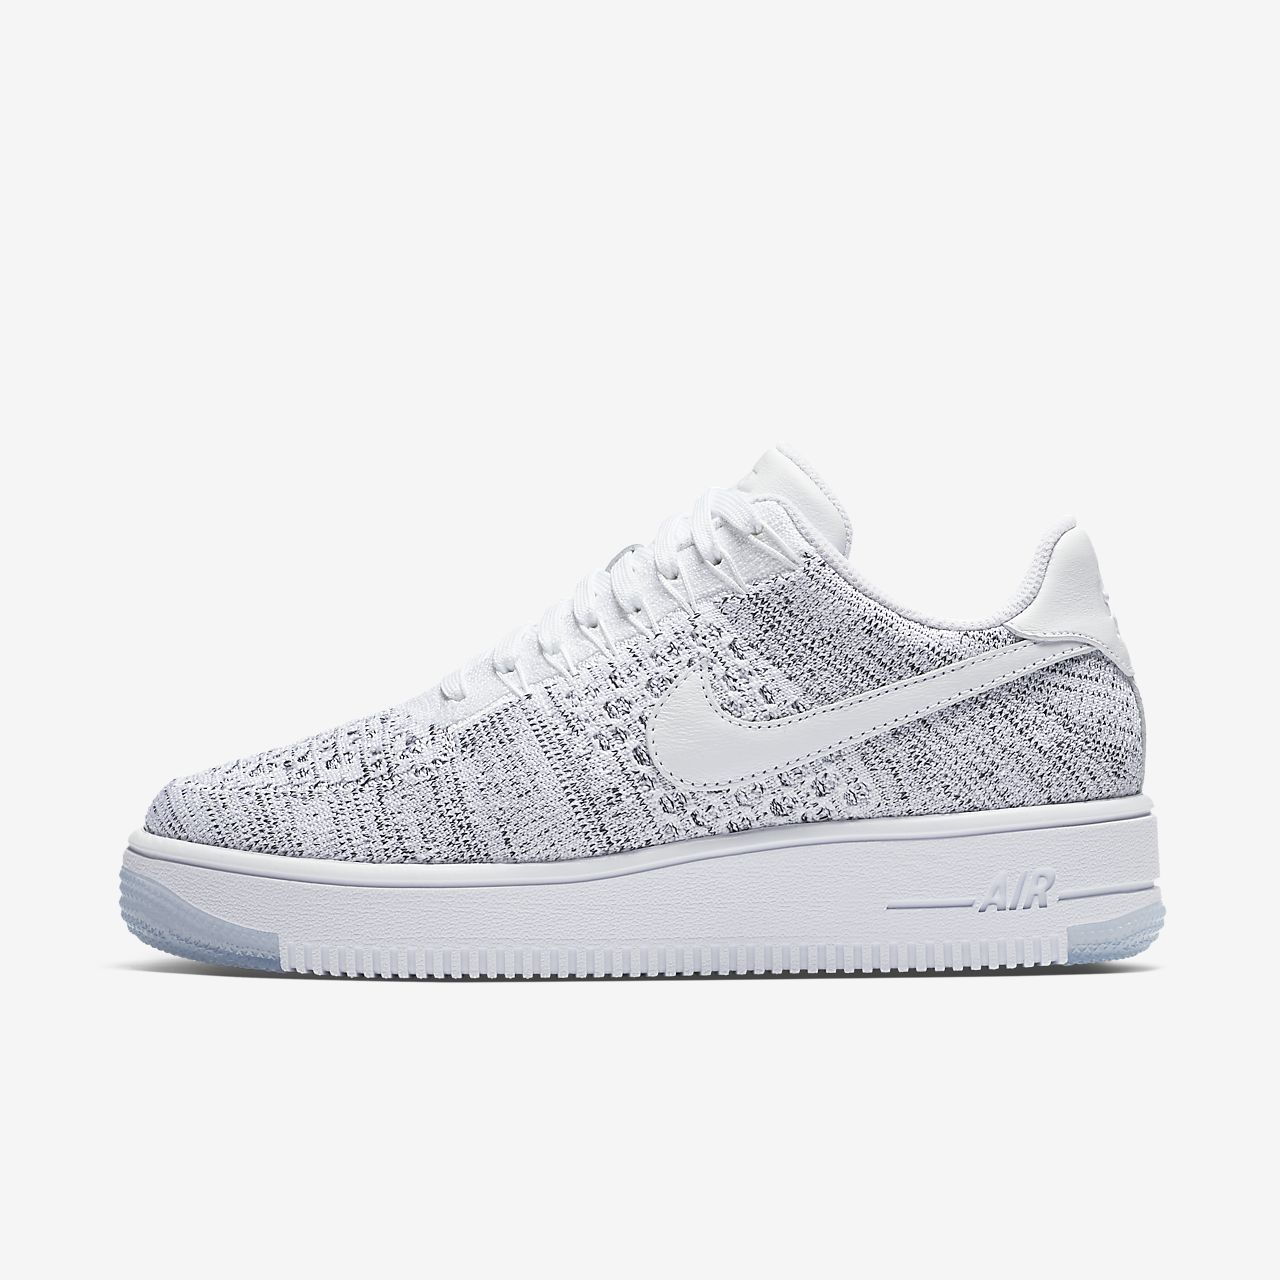 flyknit air force 1 nz